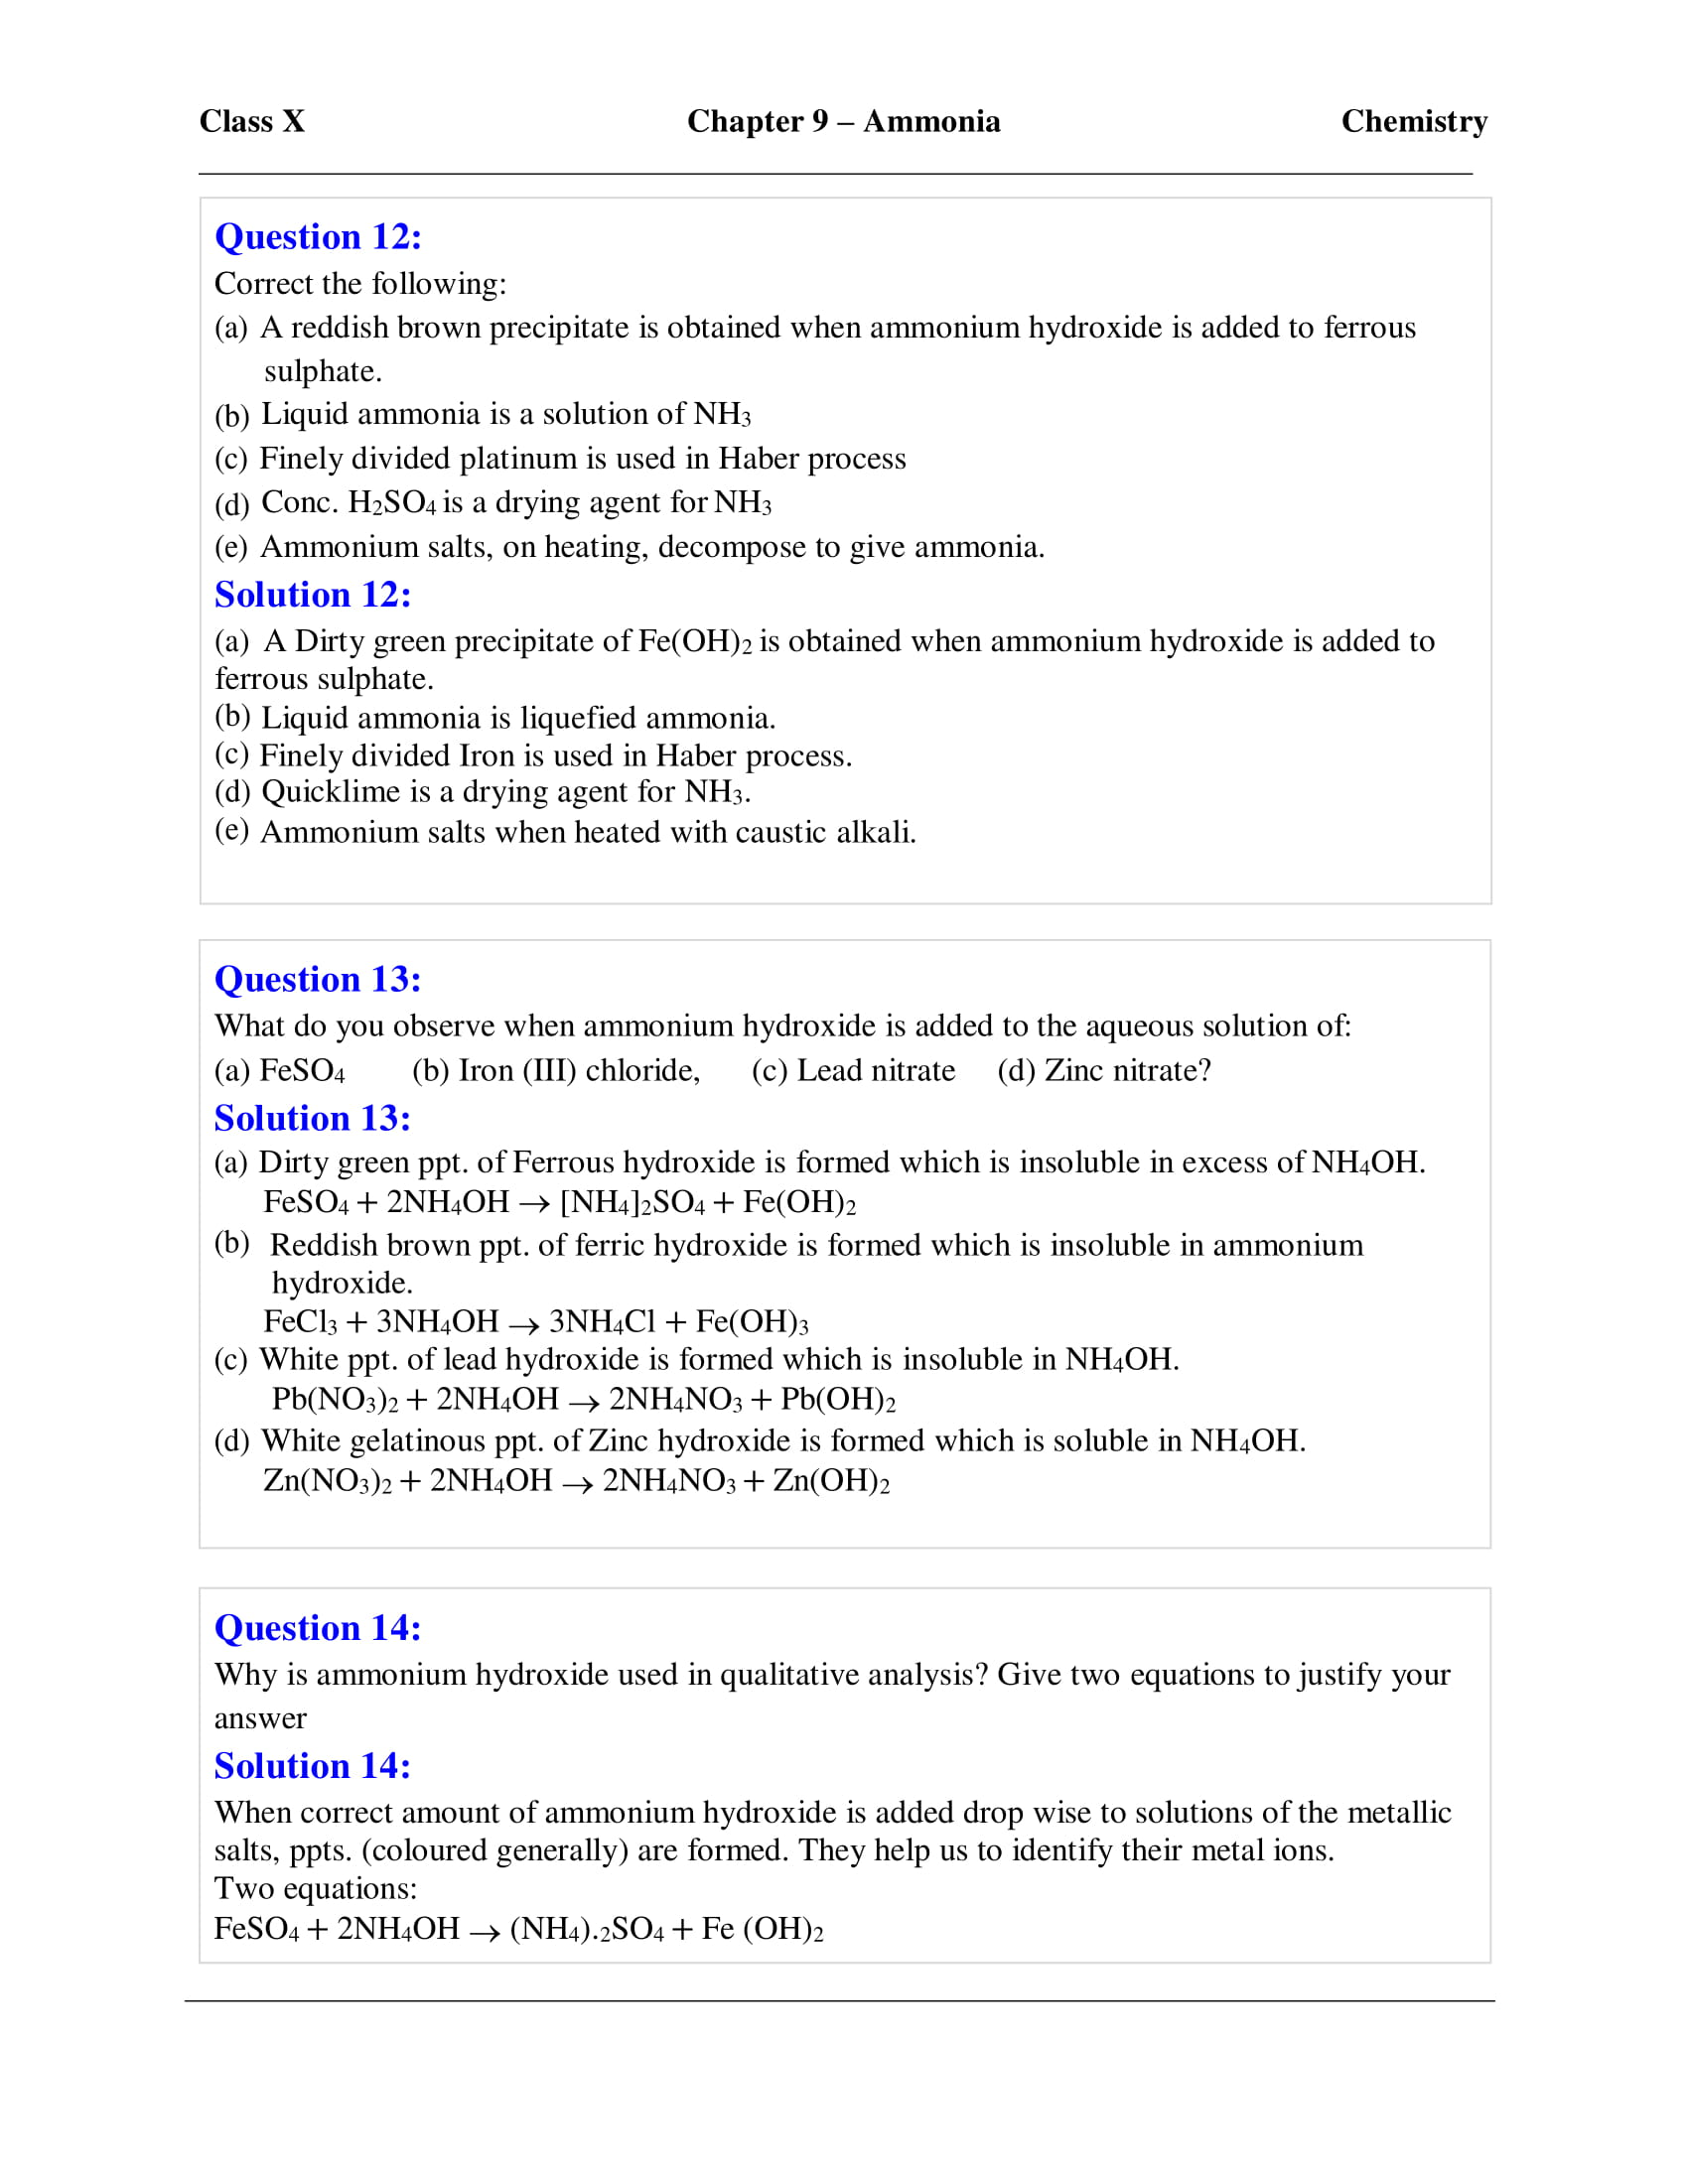 icse-selina-chemistry-solutions-class-10-chapter-9-study-of-compounds-ammonia-05